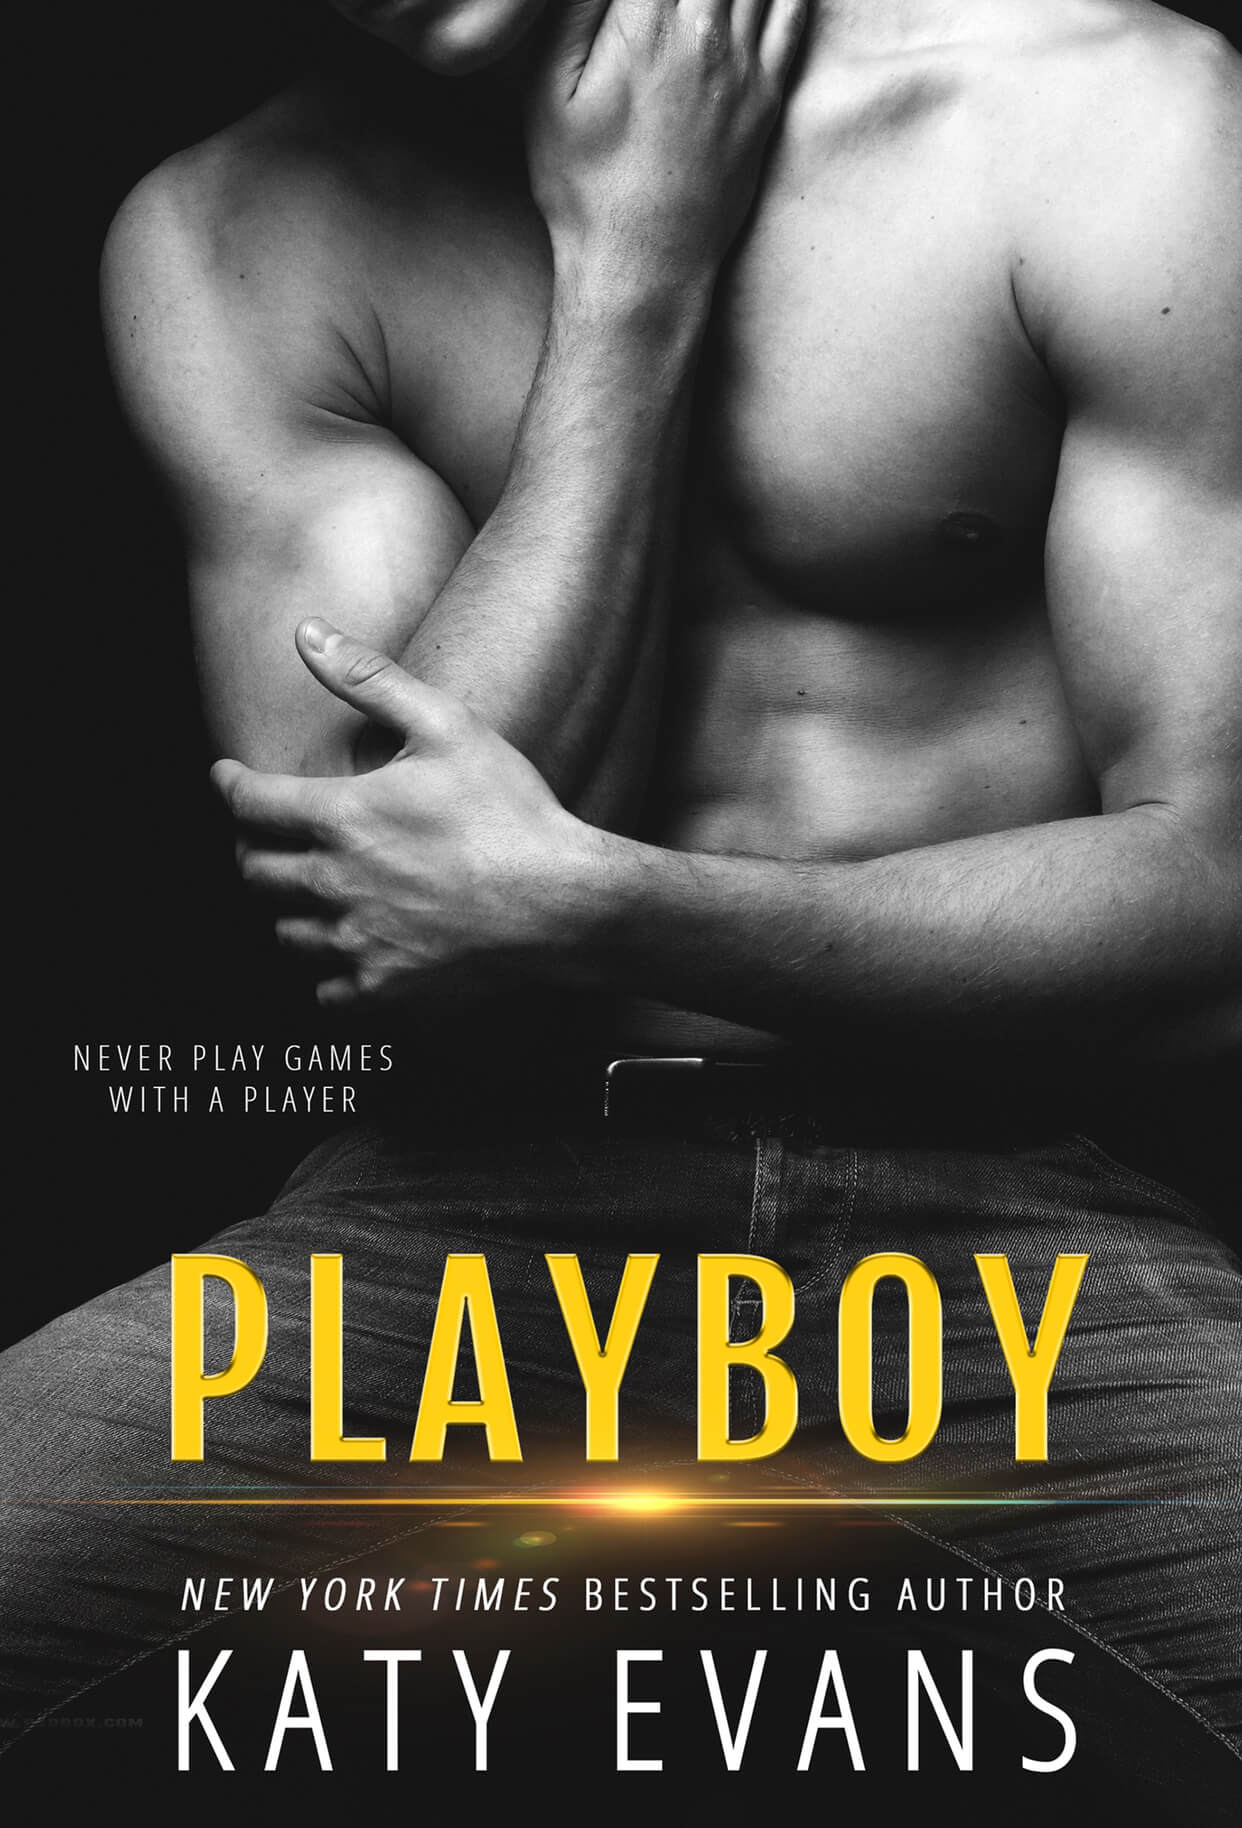 * Playboy by Katy Evans * Blog Tour * Book Review * Excerpt *